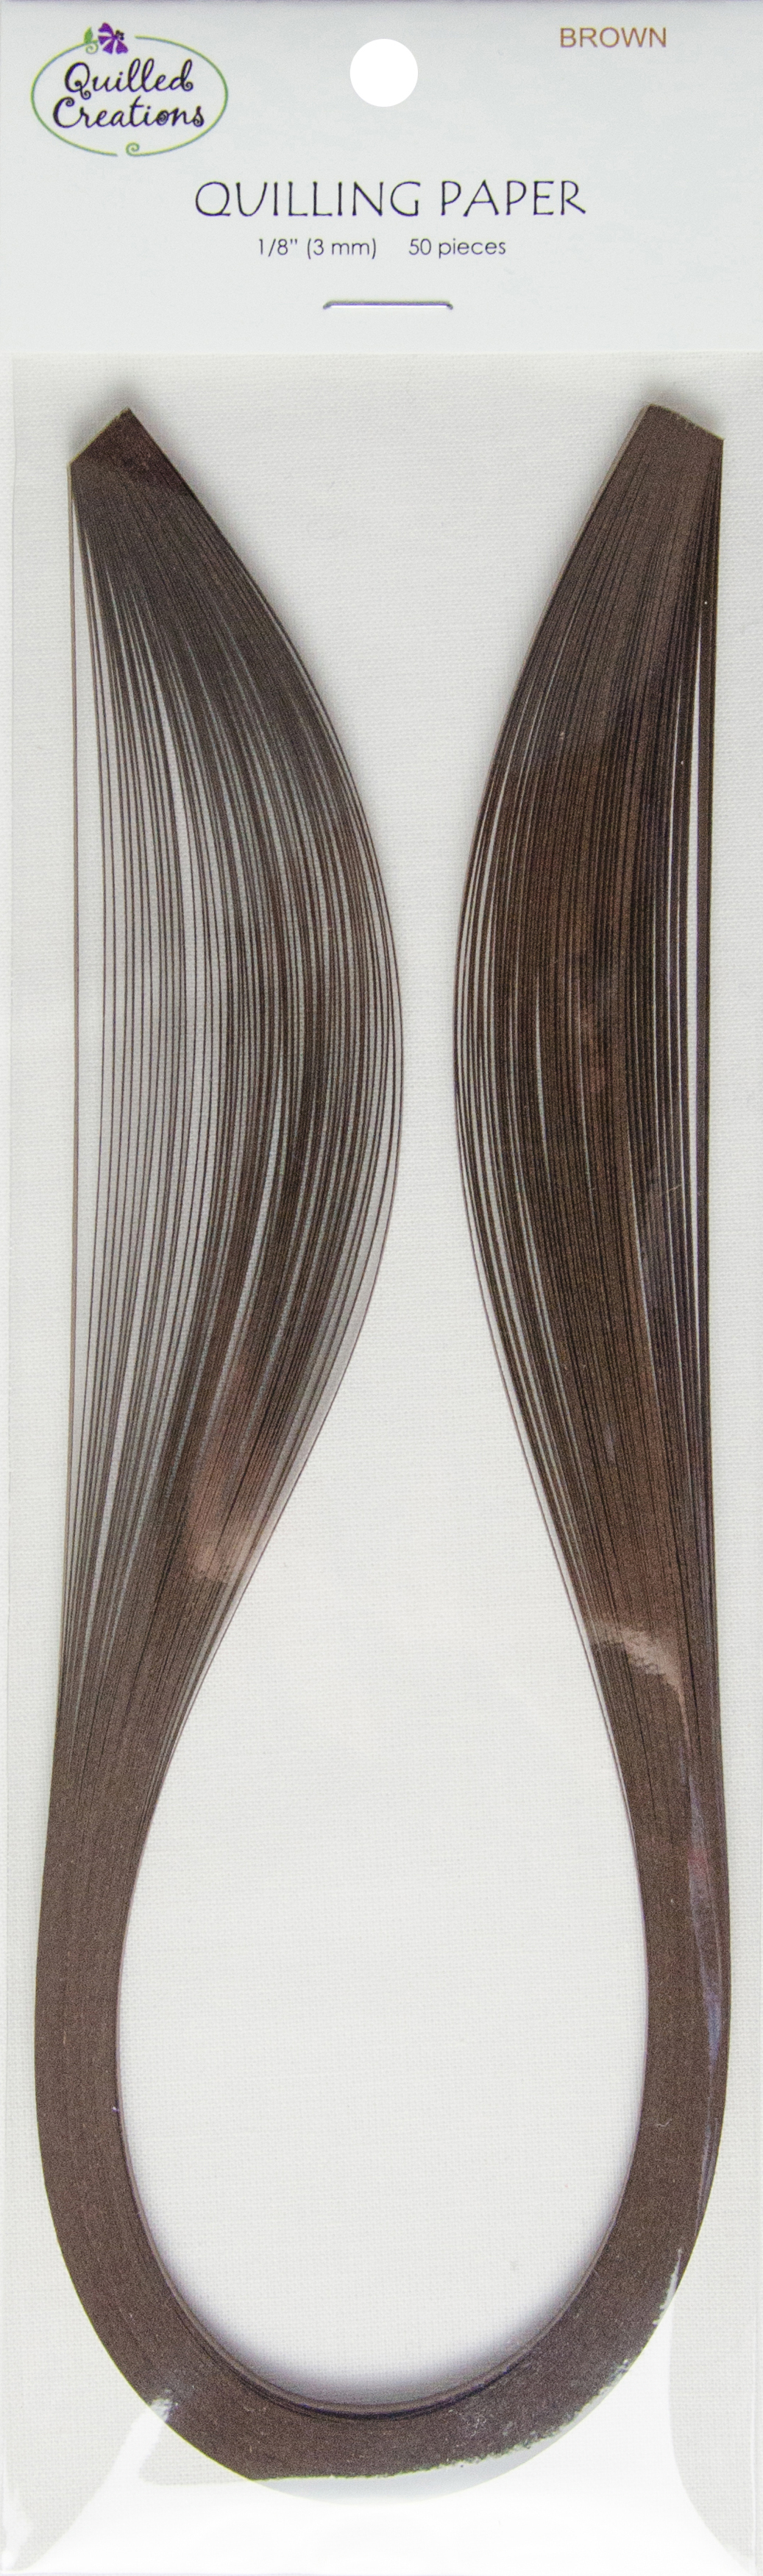 Quilling Paper 1/8 Brown